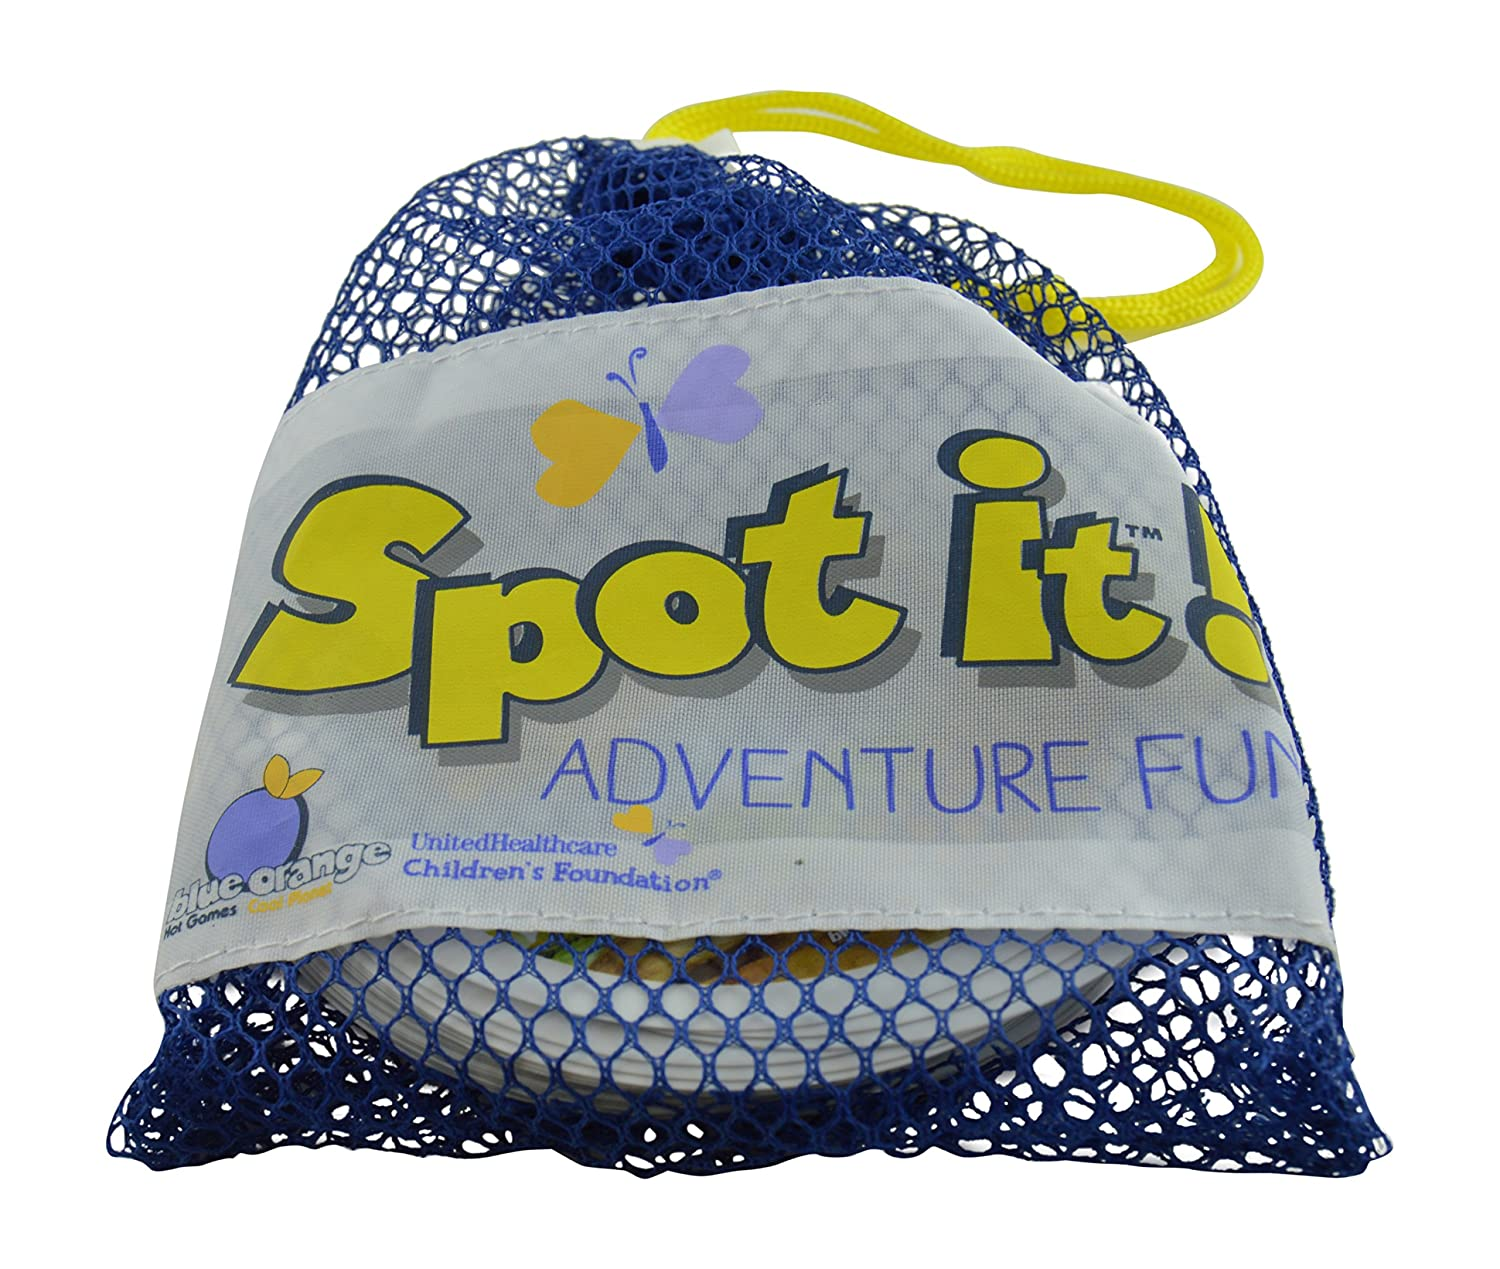 Amazon.com: Spot it! (versión inglés): Toys ...